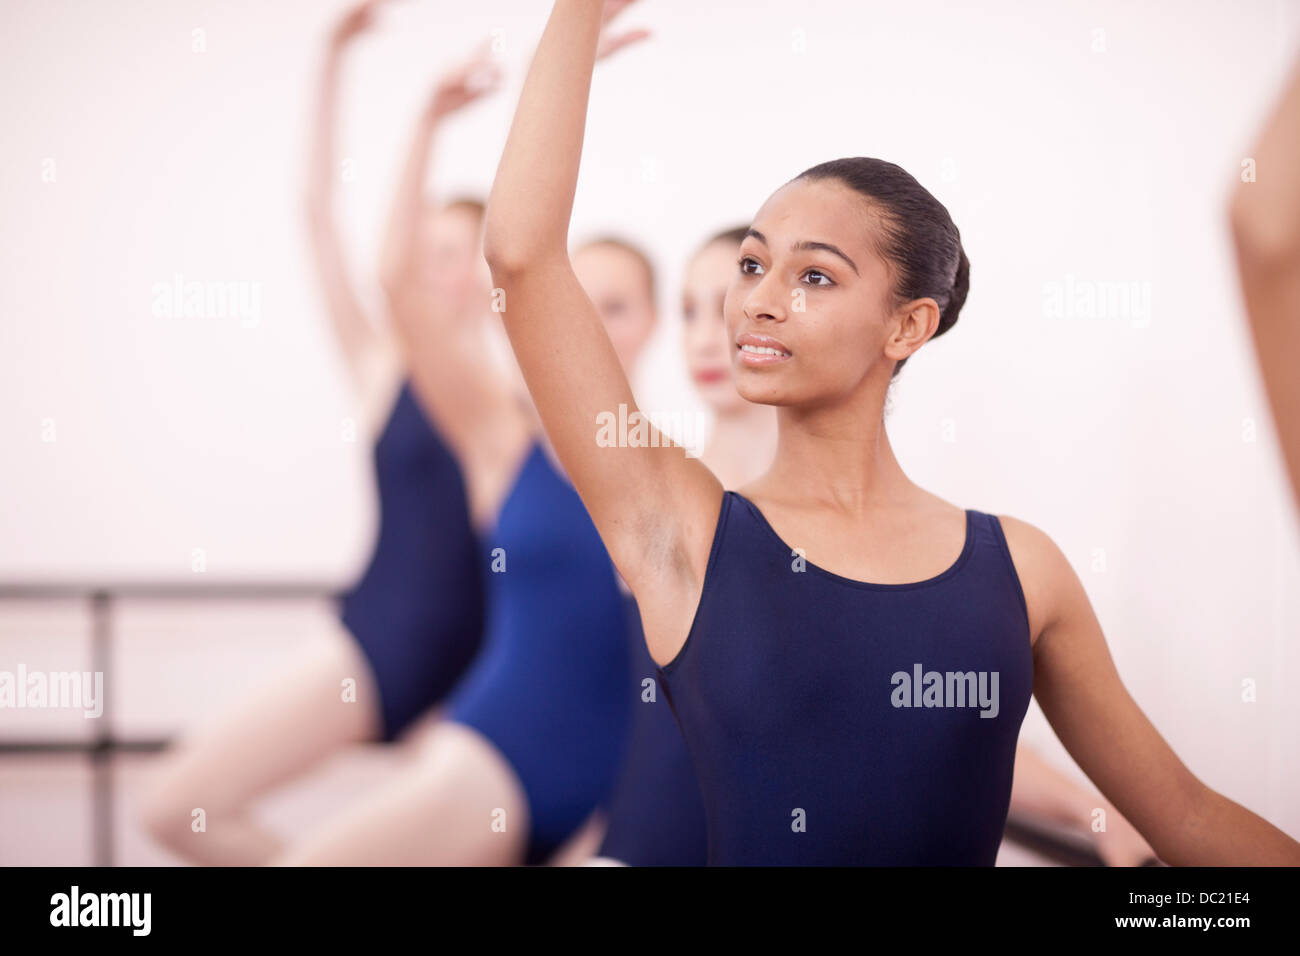 Row of teenage ballerinas with arms up - Stock Image